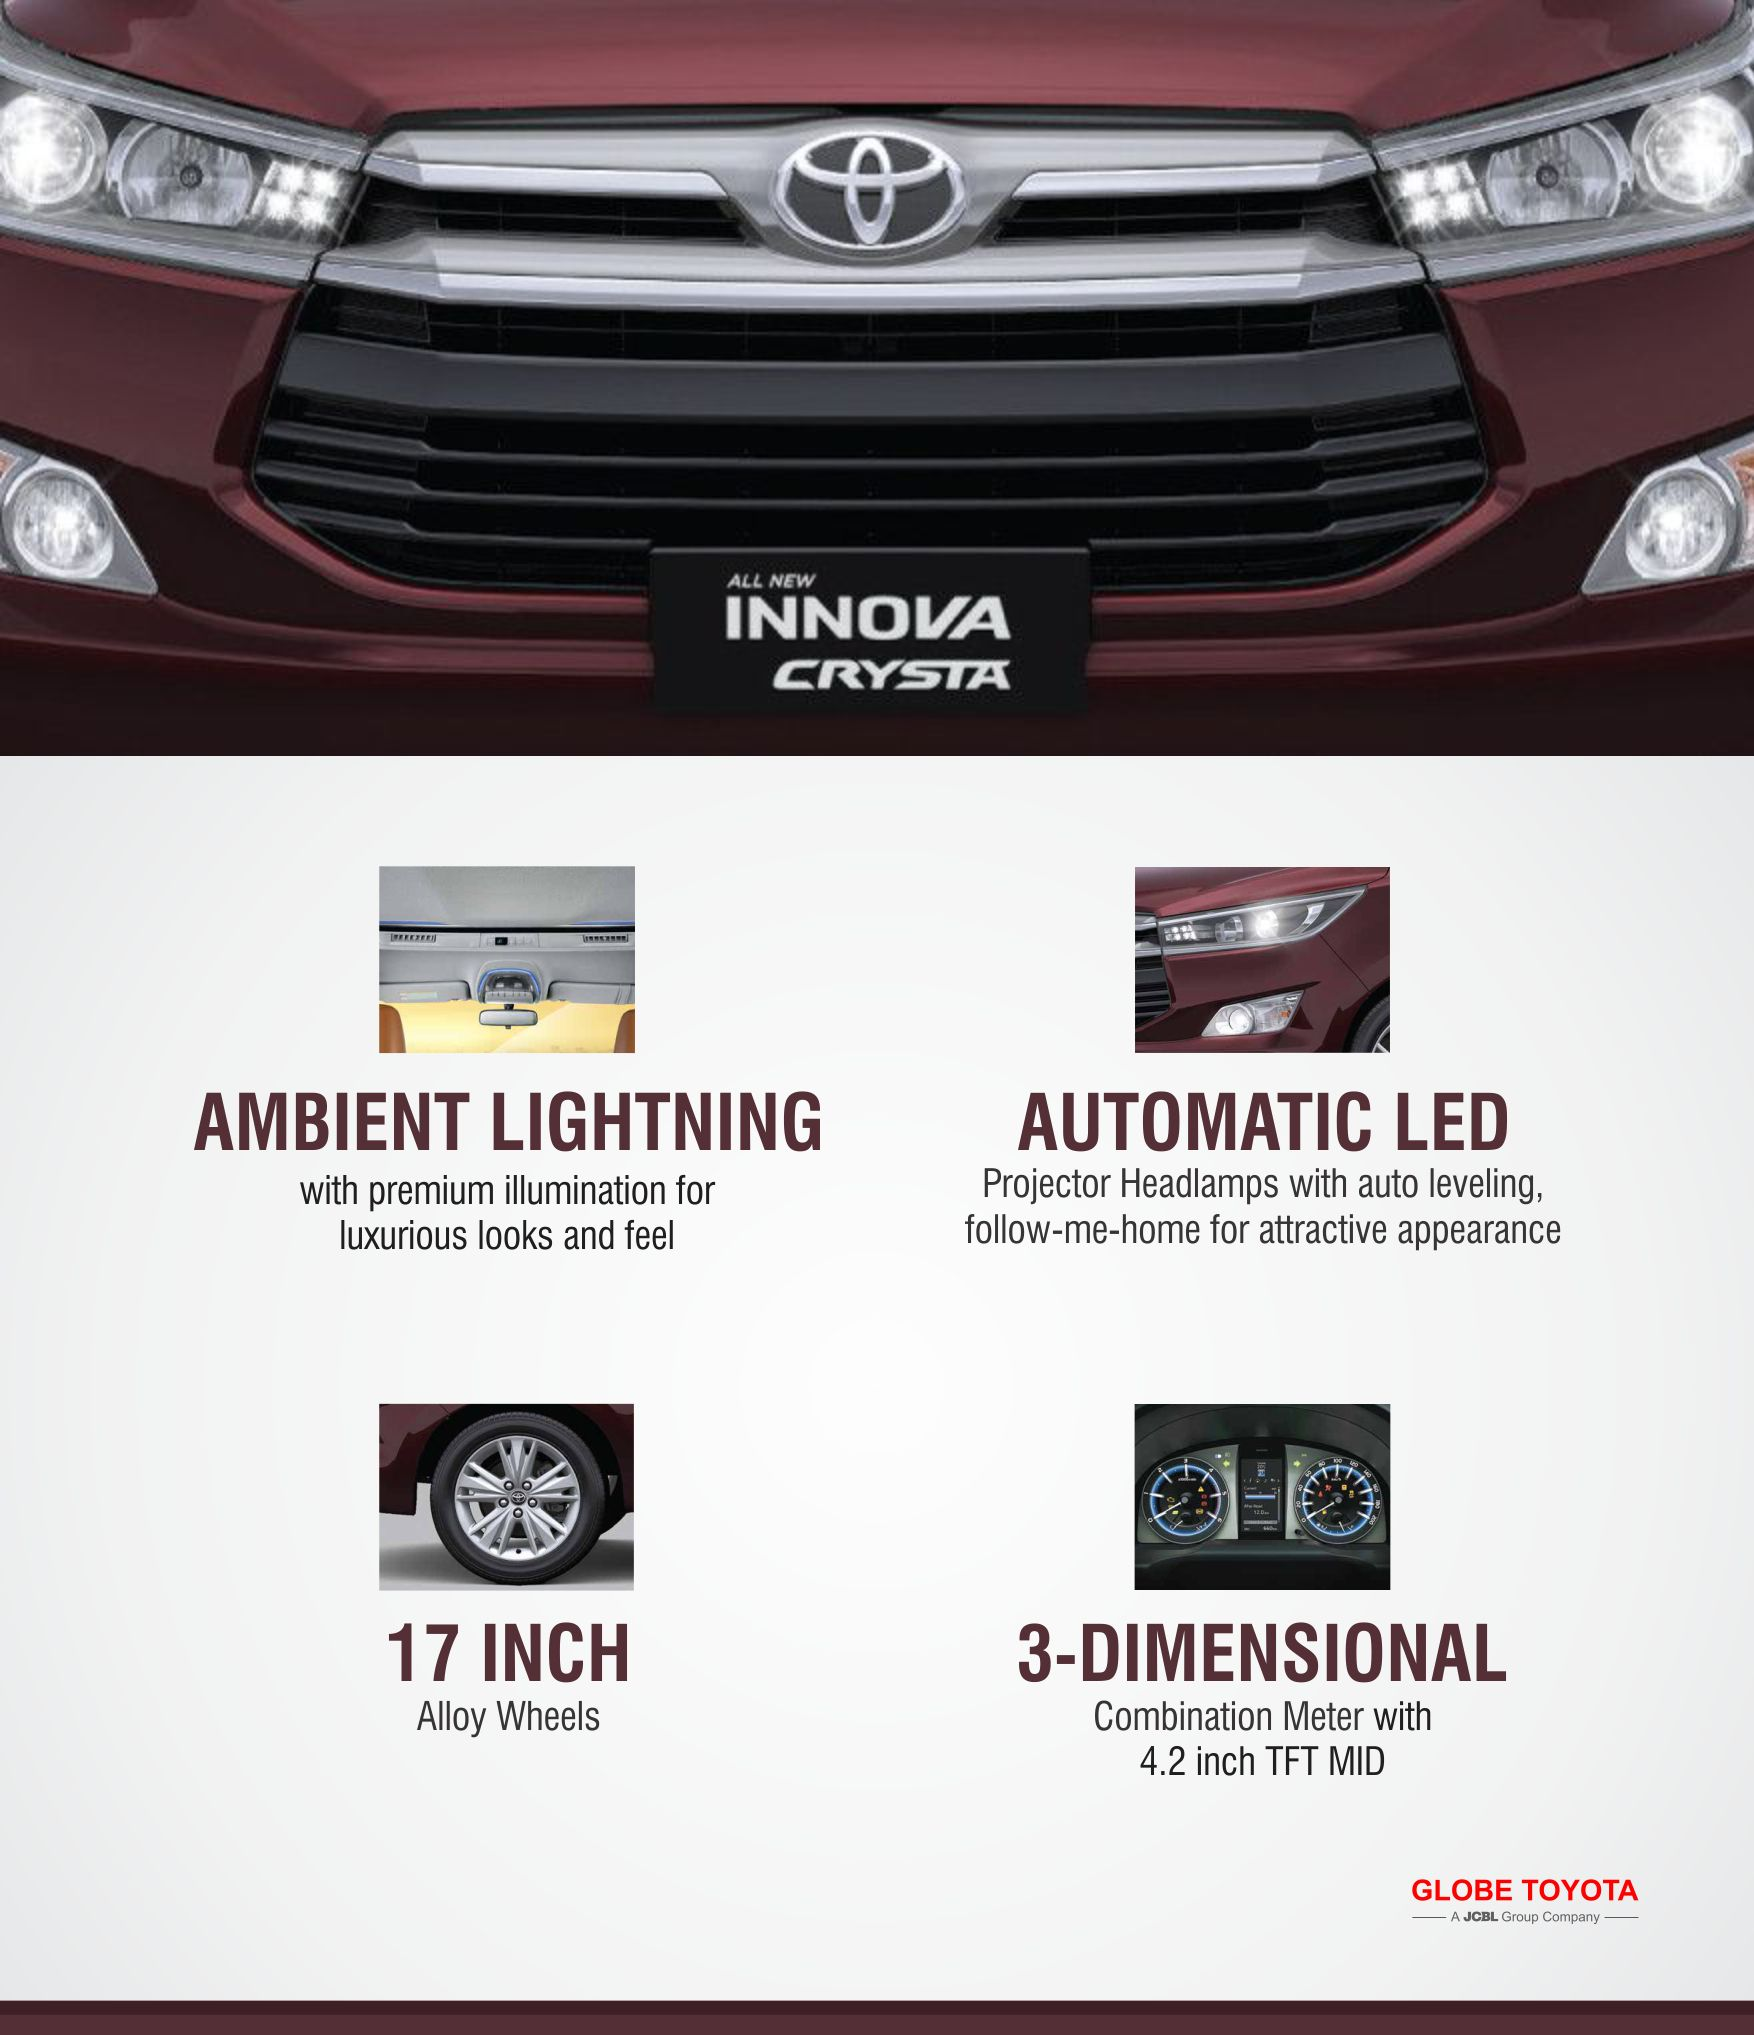 Innovacrysta 2nd Generation Version Of Super Popular Mpv Is Loaded With Features Never Seen Before In Mpv Class Why Cry Toyota Toyota Dealership Globe